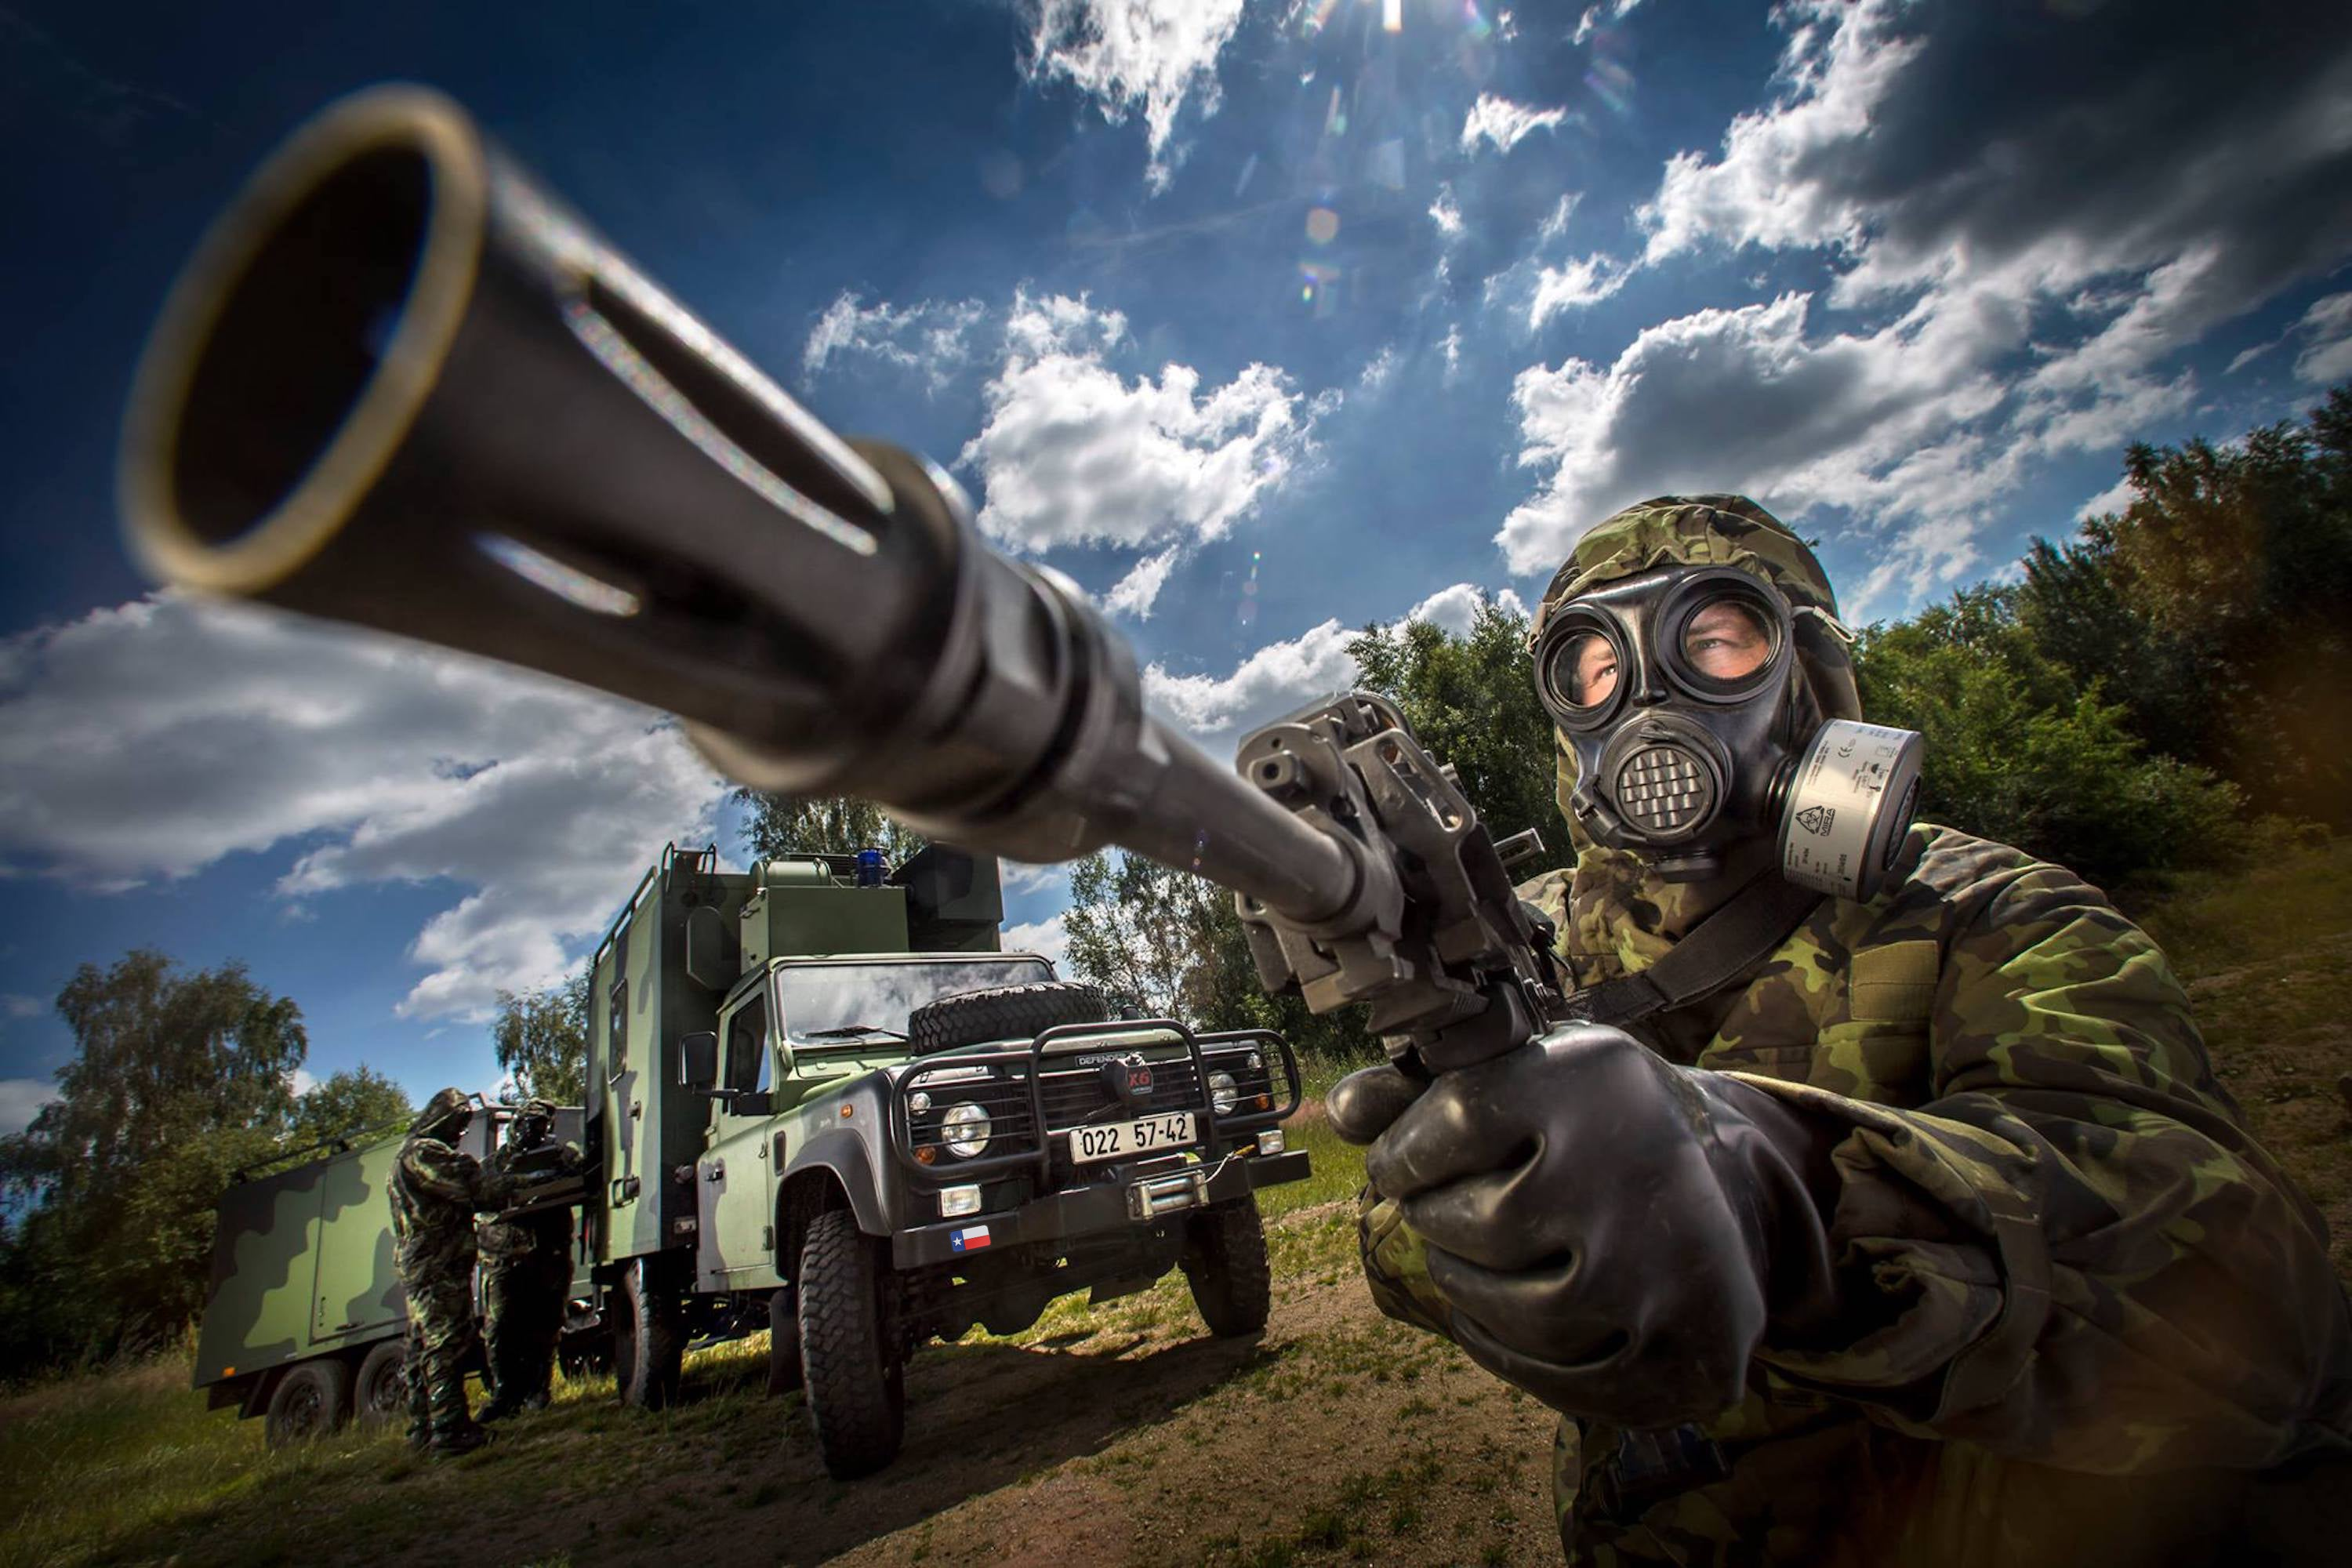 Solider using the NBC-77 SOF CBRN gas mask filter with a firearm